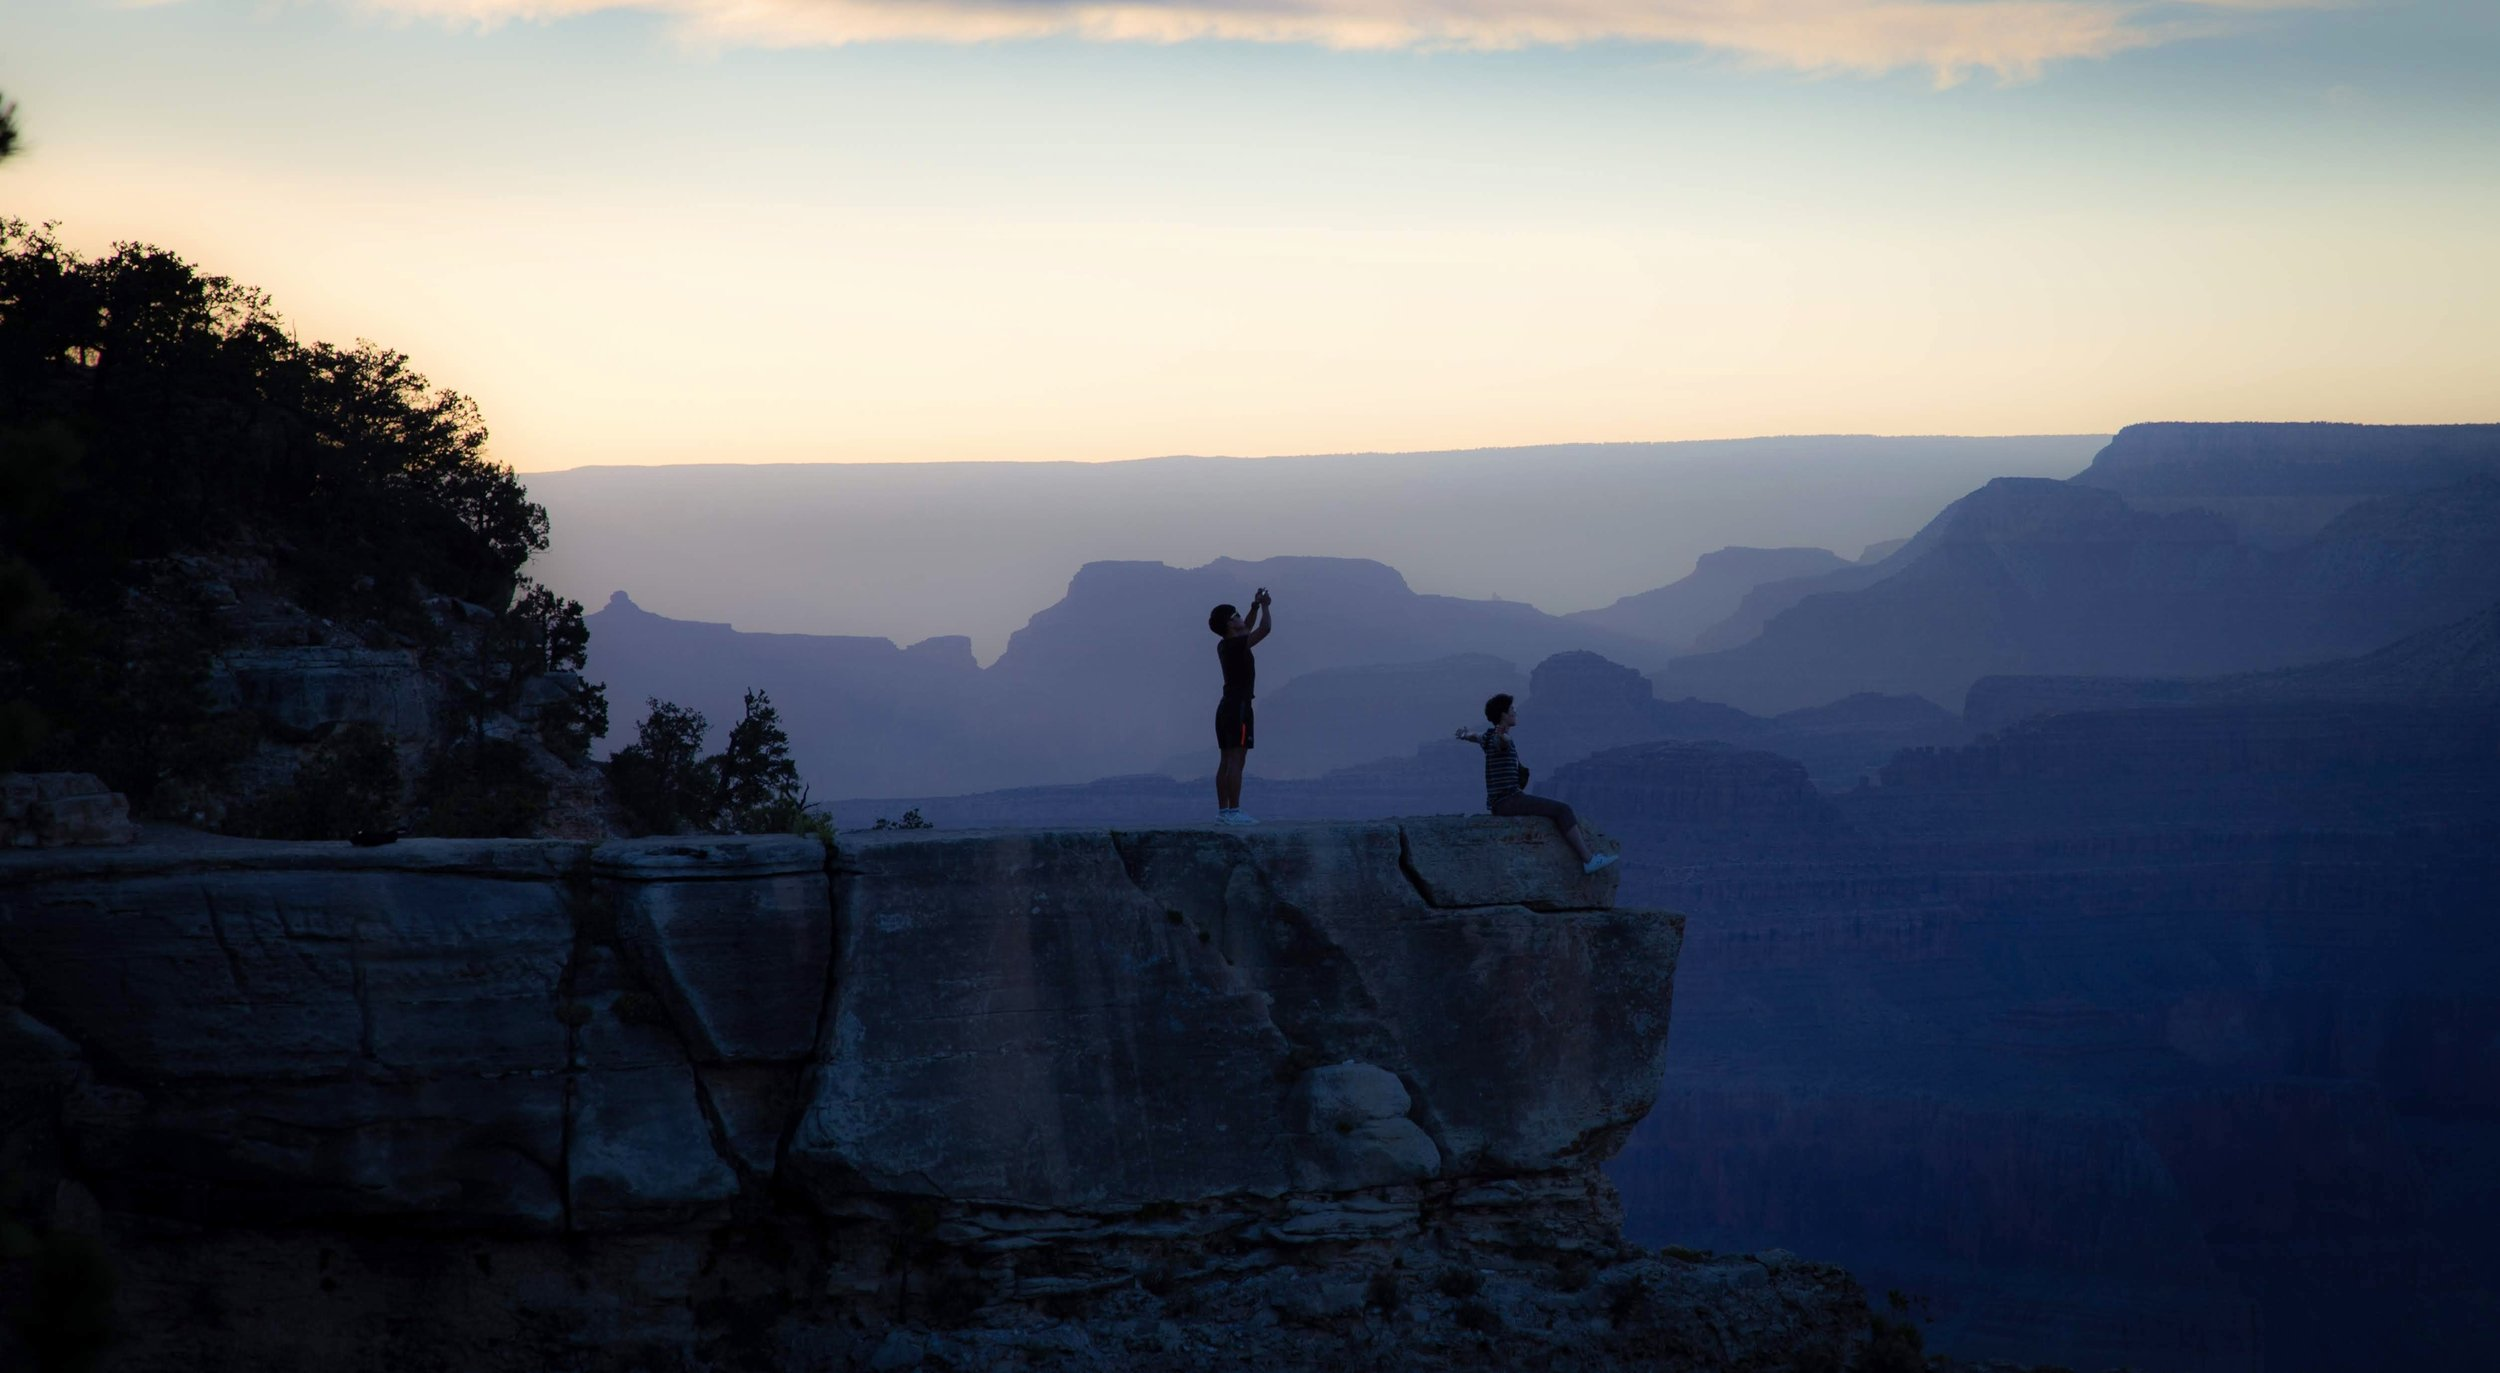 Tourists soaking it up @  Grand Canyon National Park .  @roger.cummings